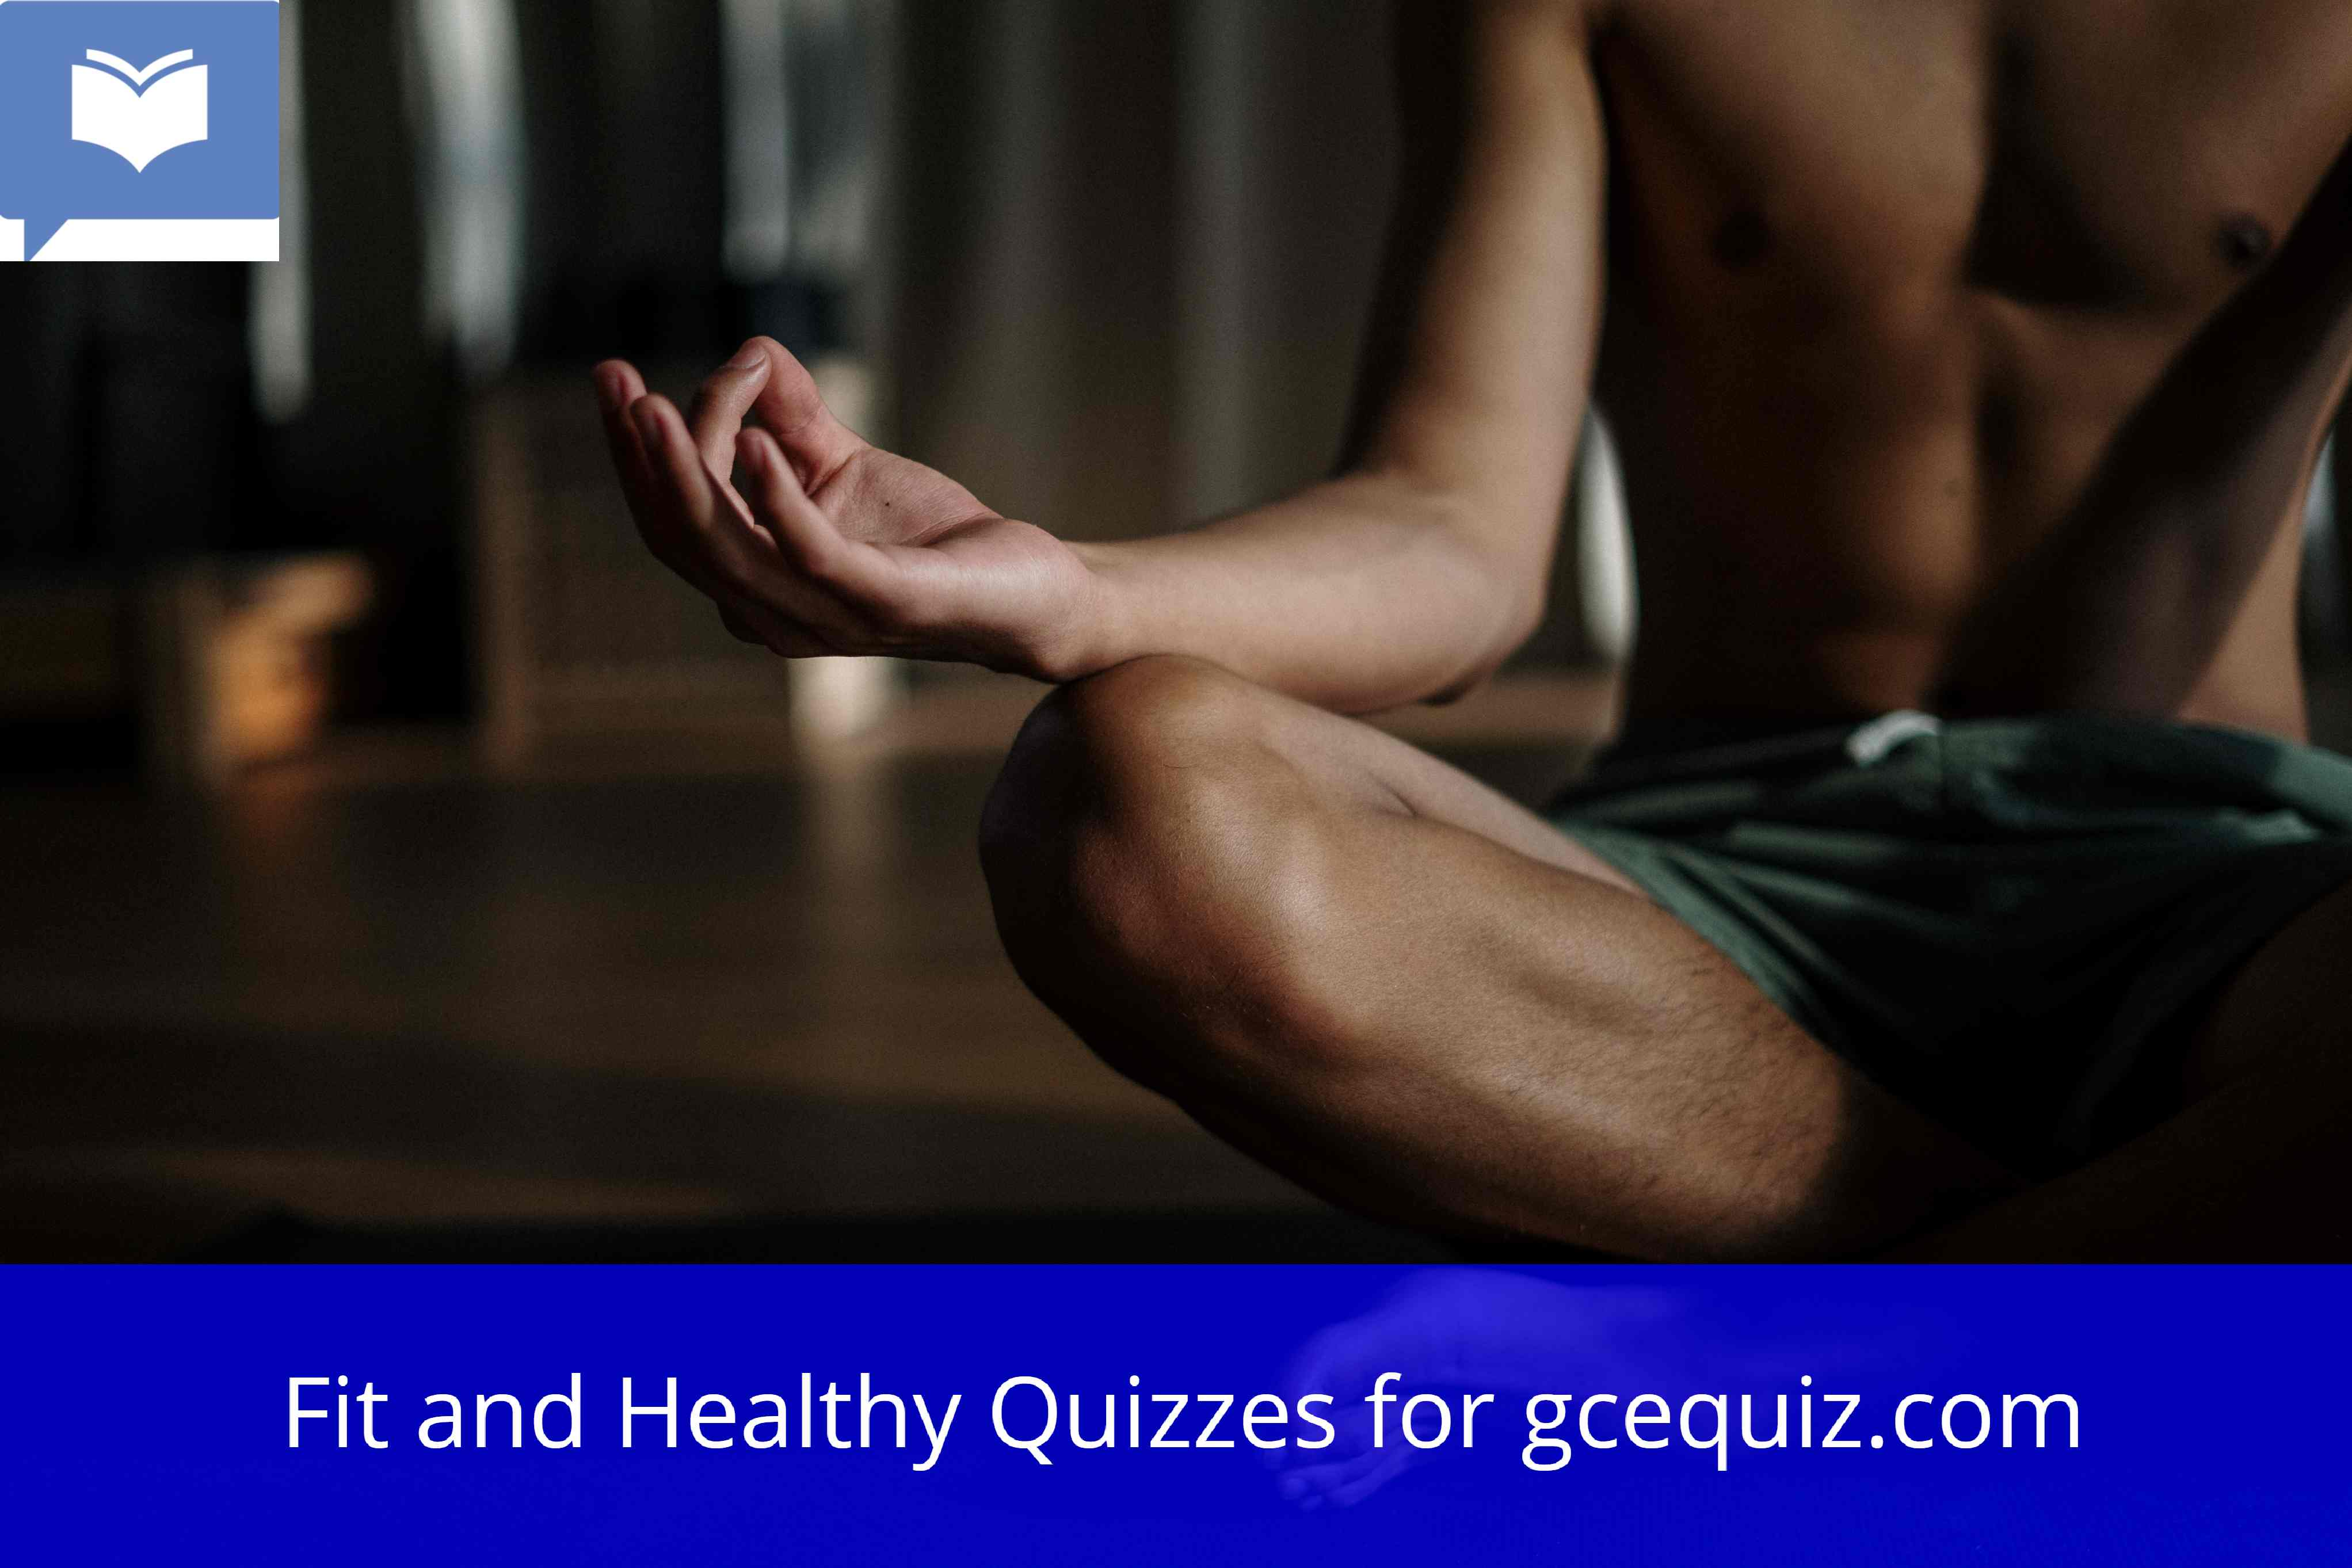 Fit and healthy quiz